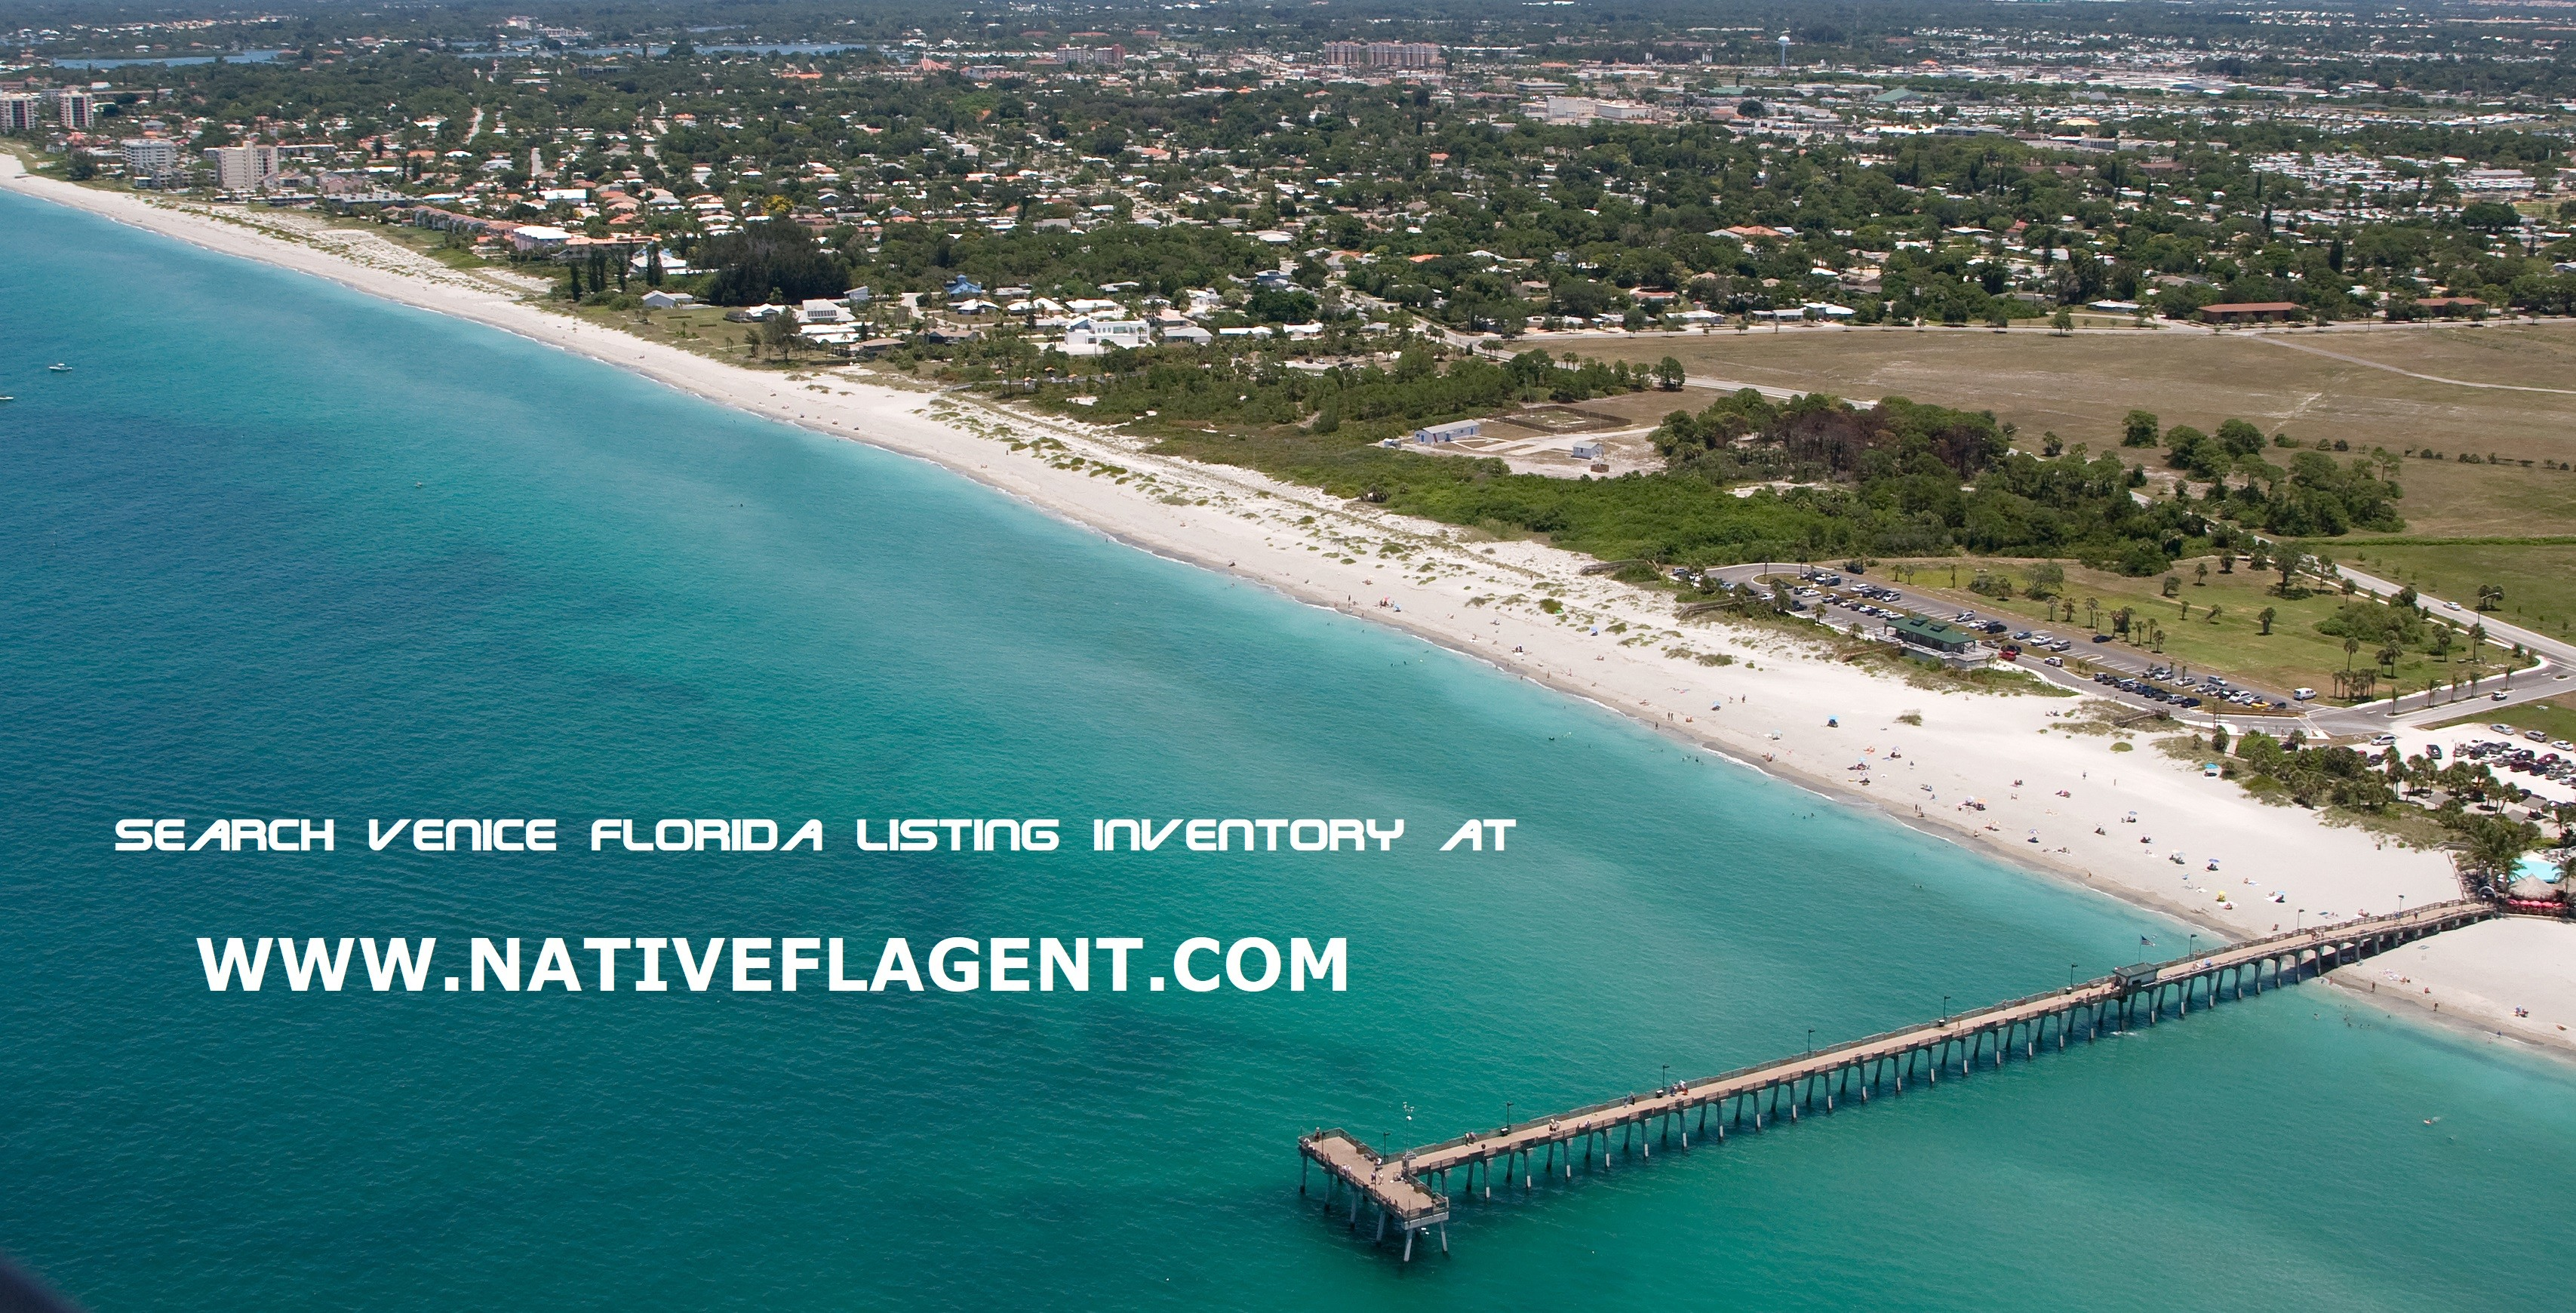 Search accurate listing inventory in Venice Florida